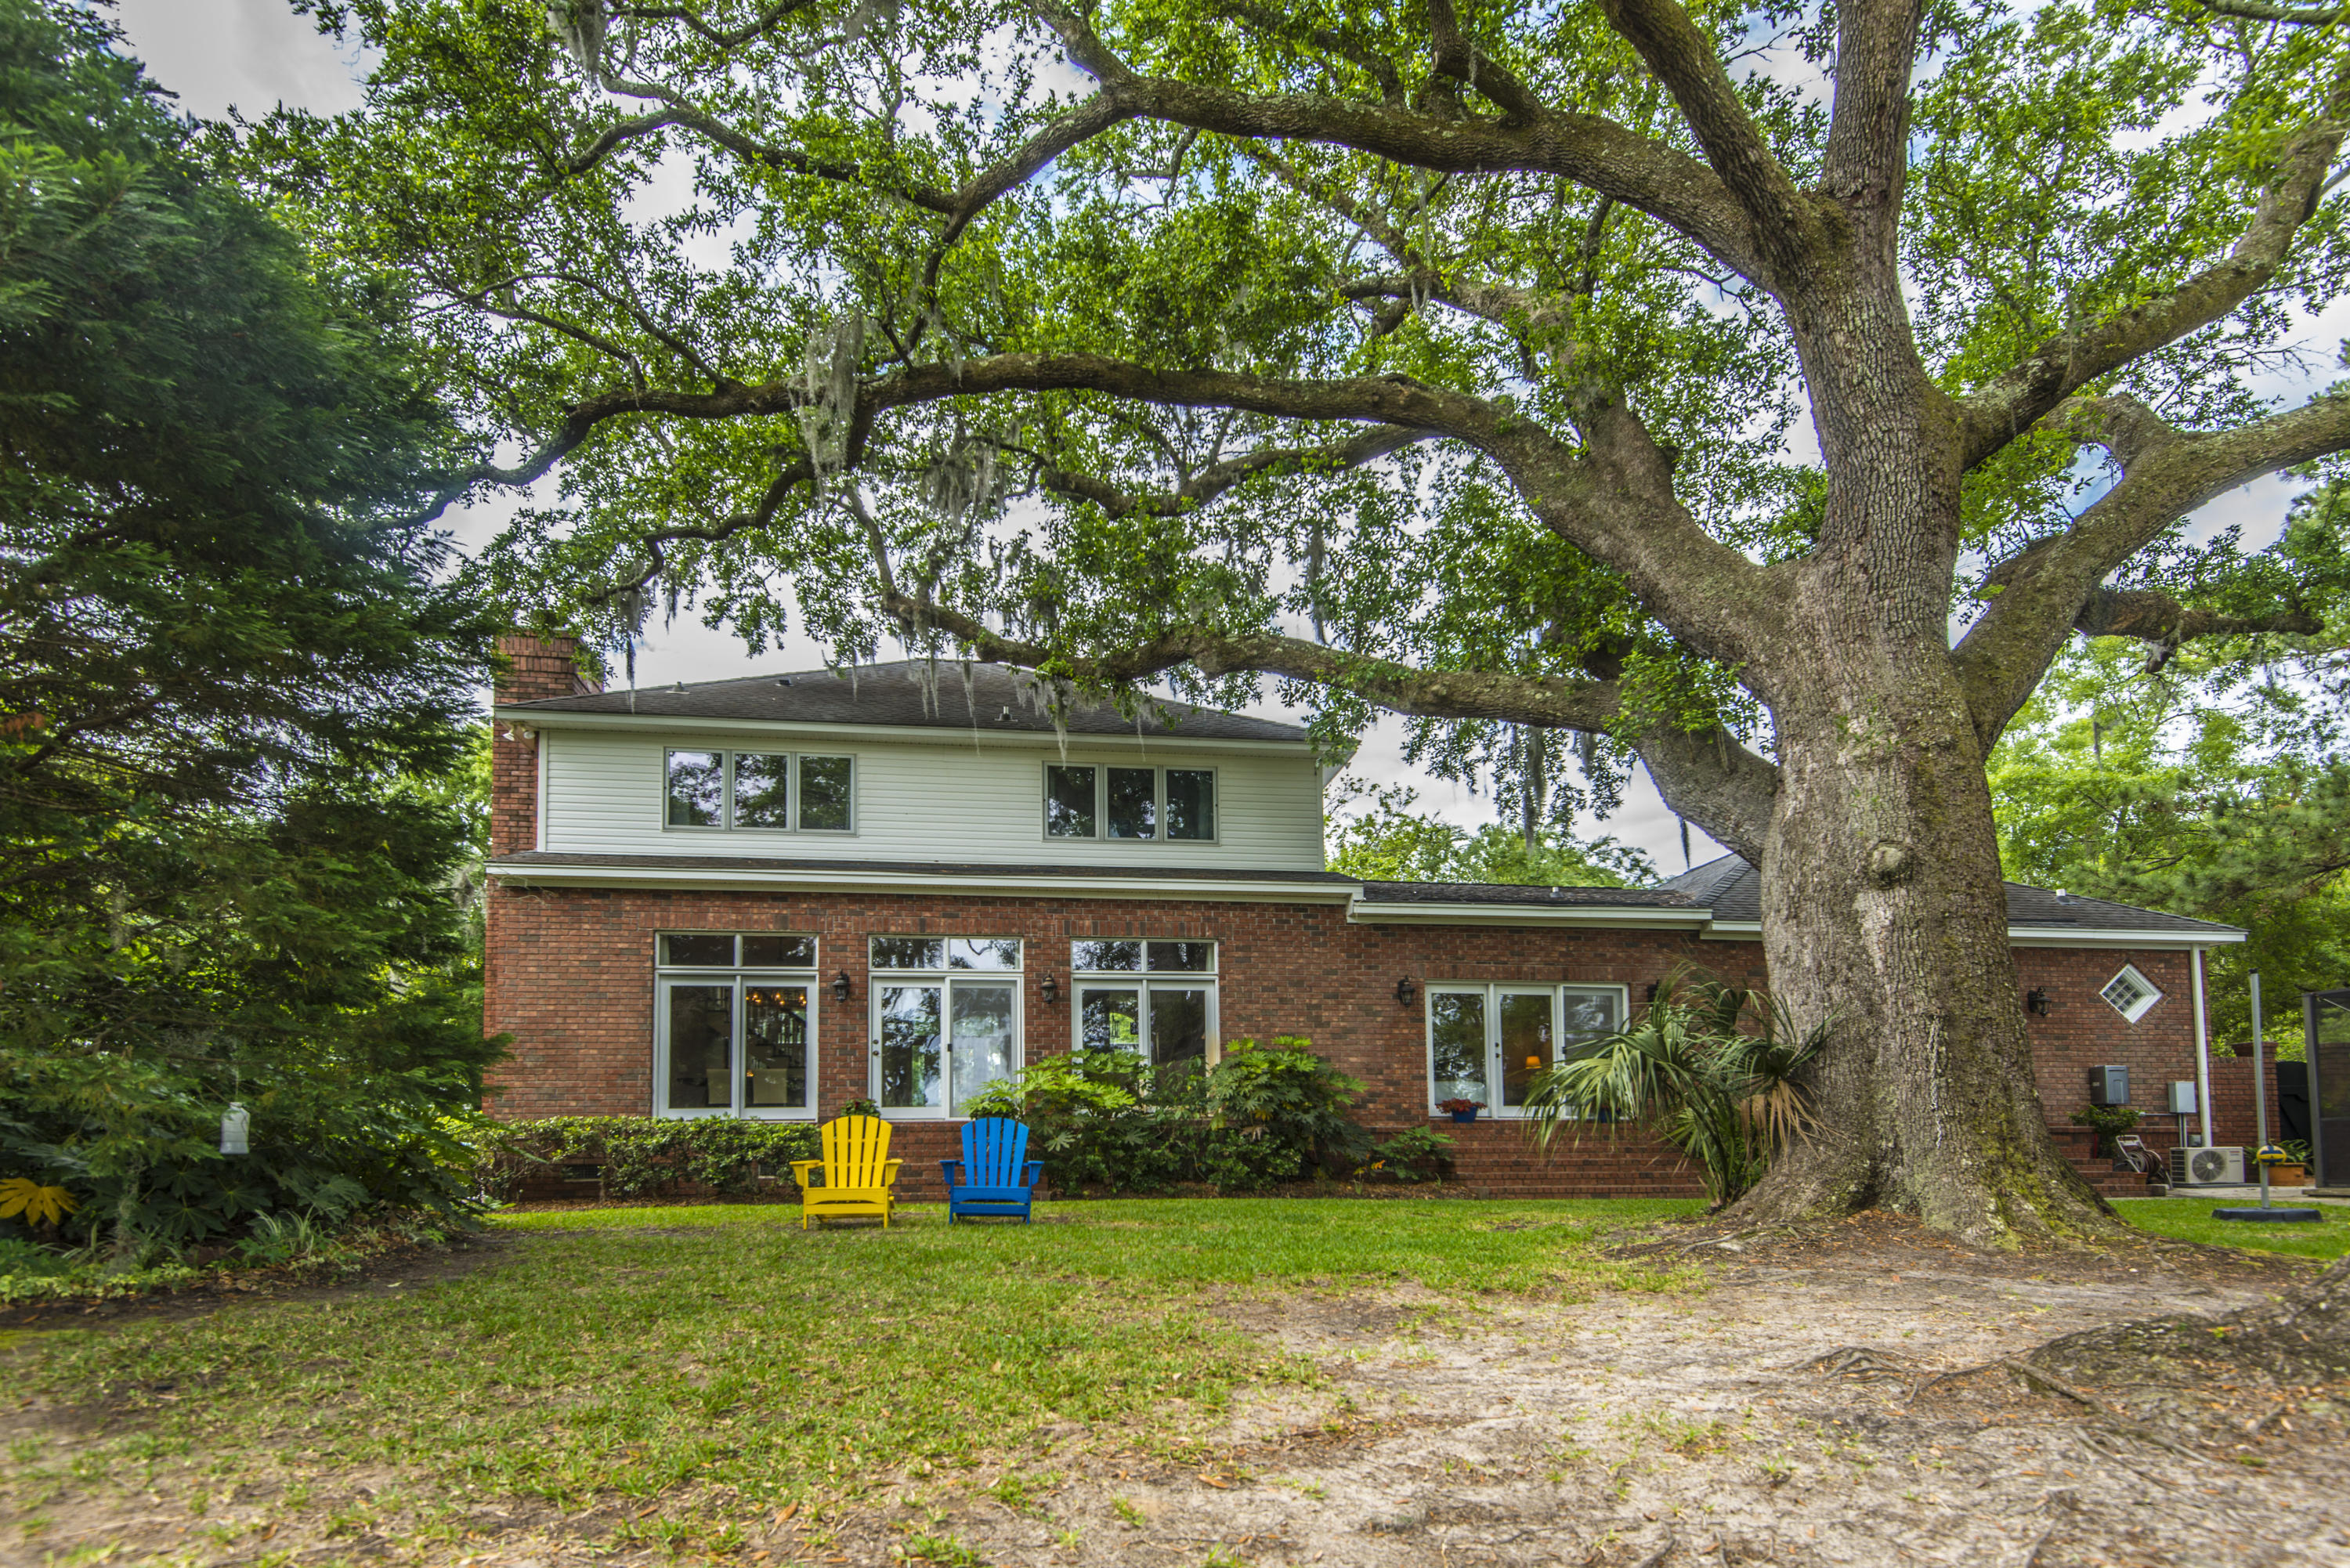 Stiles Point Plantation Homes For Sale - 921 Cotton House, Charleston, SC - 5